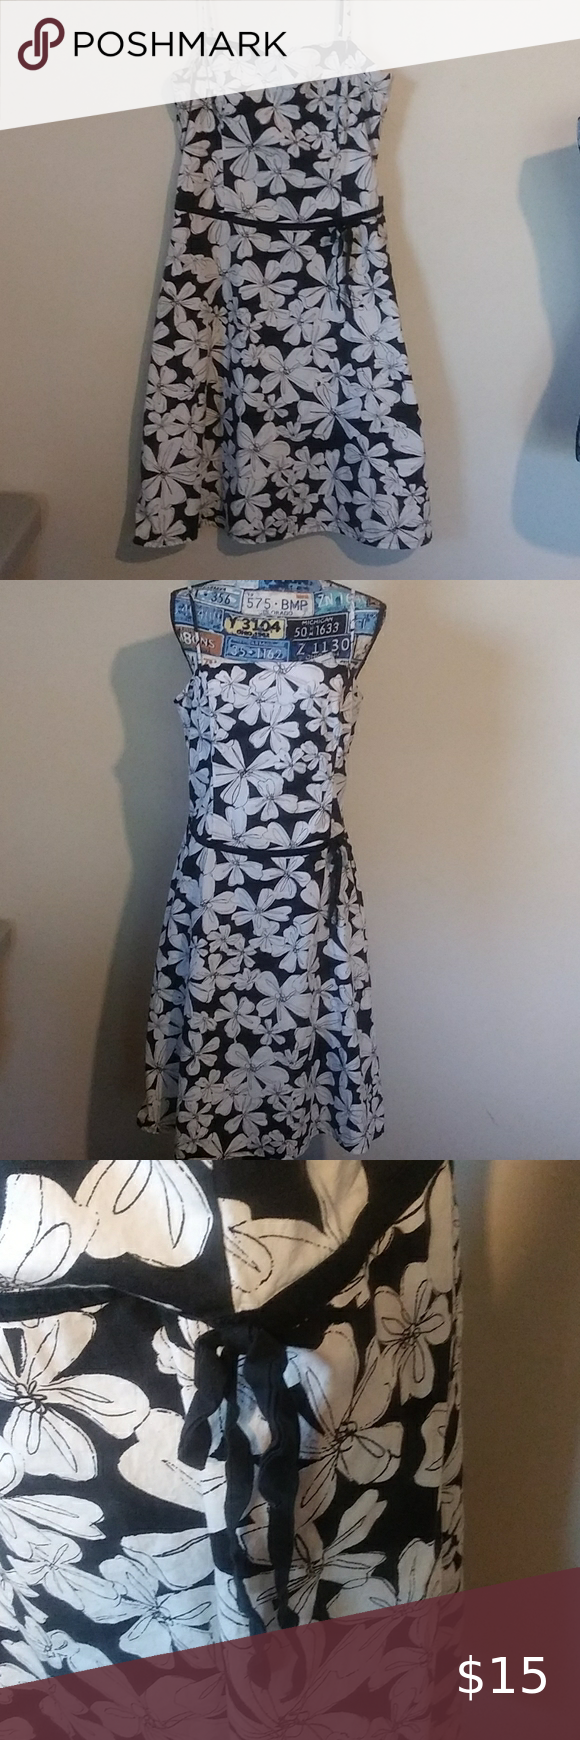 New York Co Black And White Floral Dress Floral Dress Black White Floral Dress Dresses [ 1740 x 580 Pixel ]